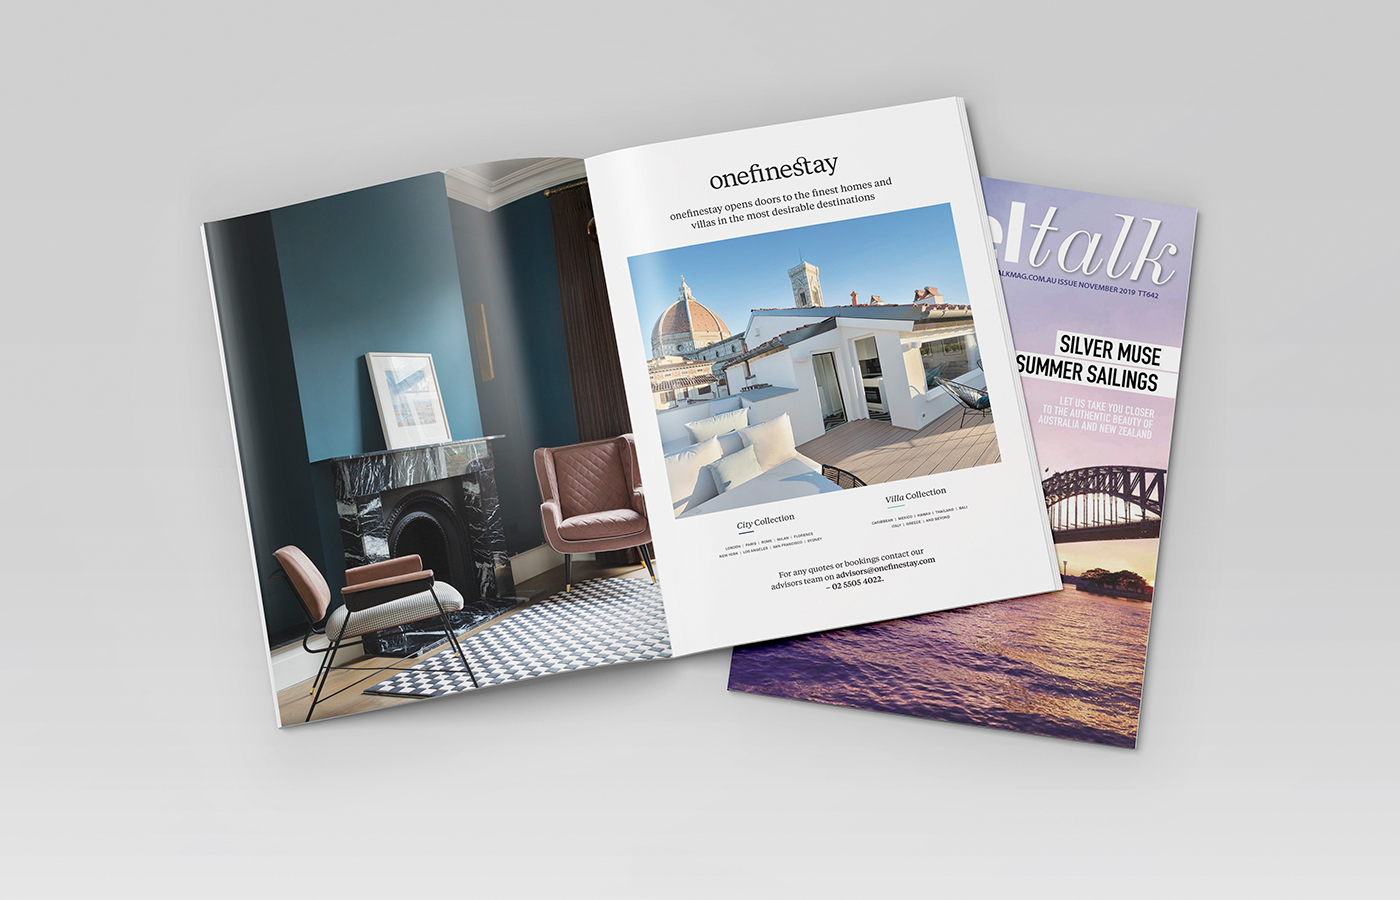 one fine stay brand guidelines example mag ad design